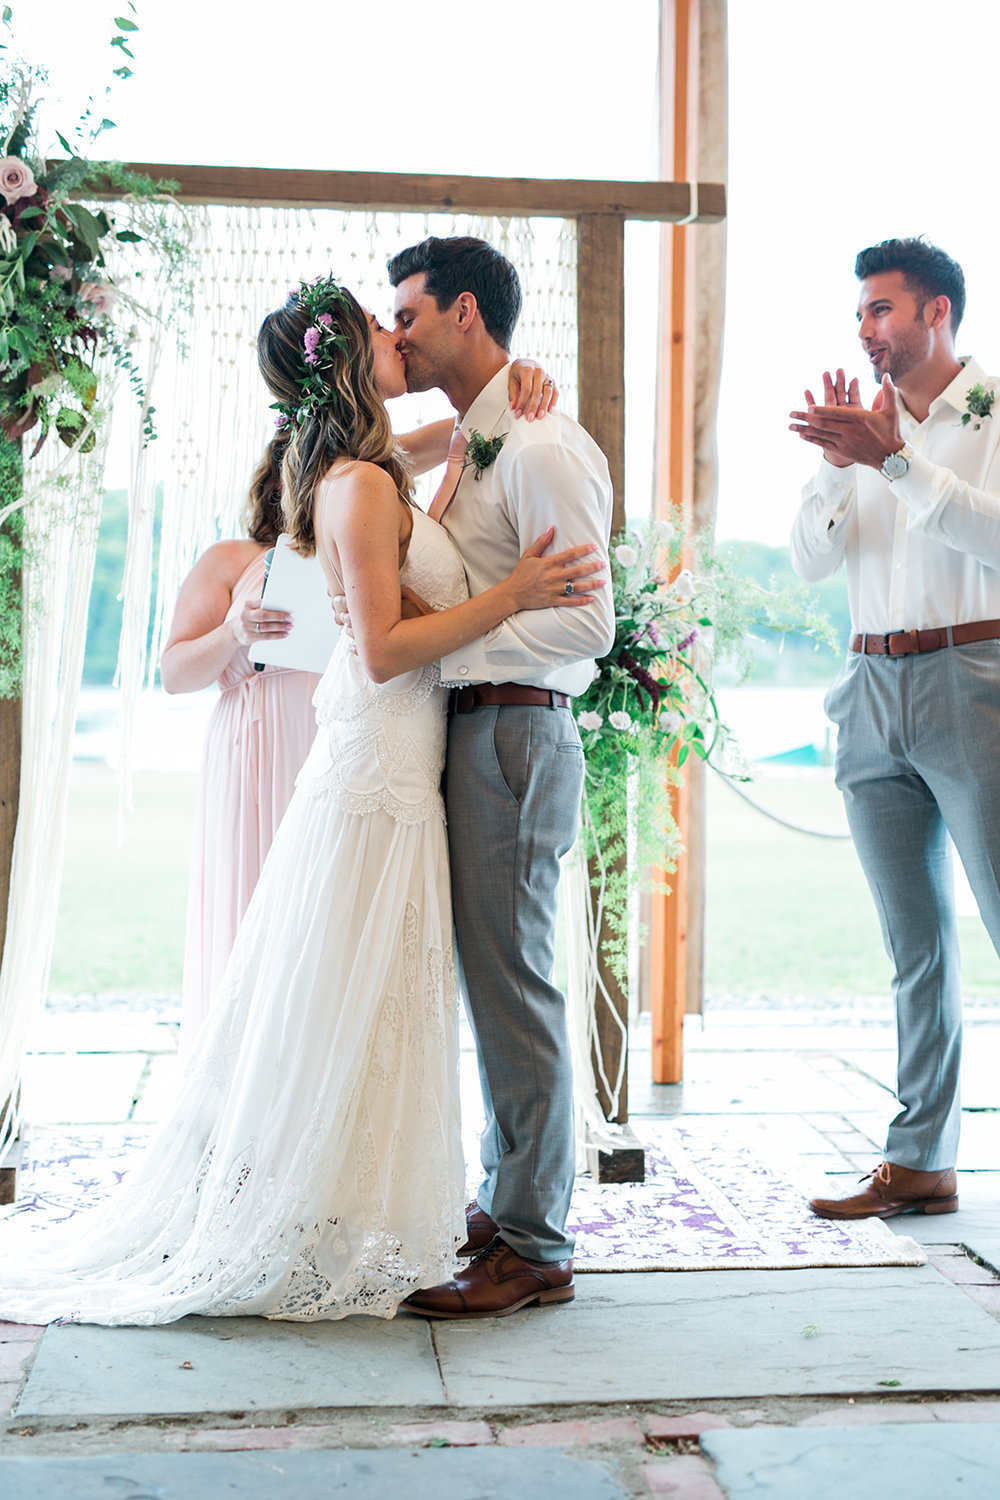 First kiss as husband and wife - Pearl Weddings & Events